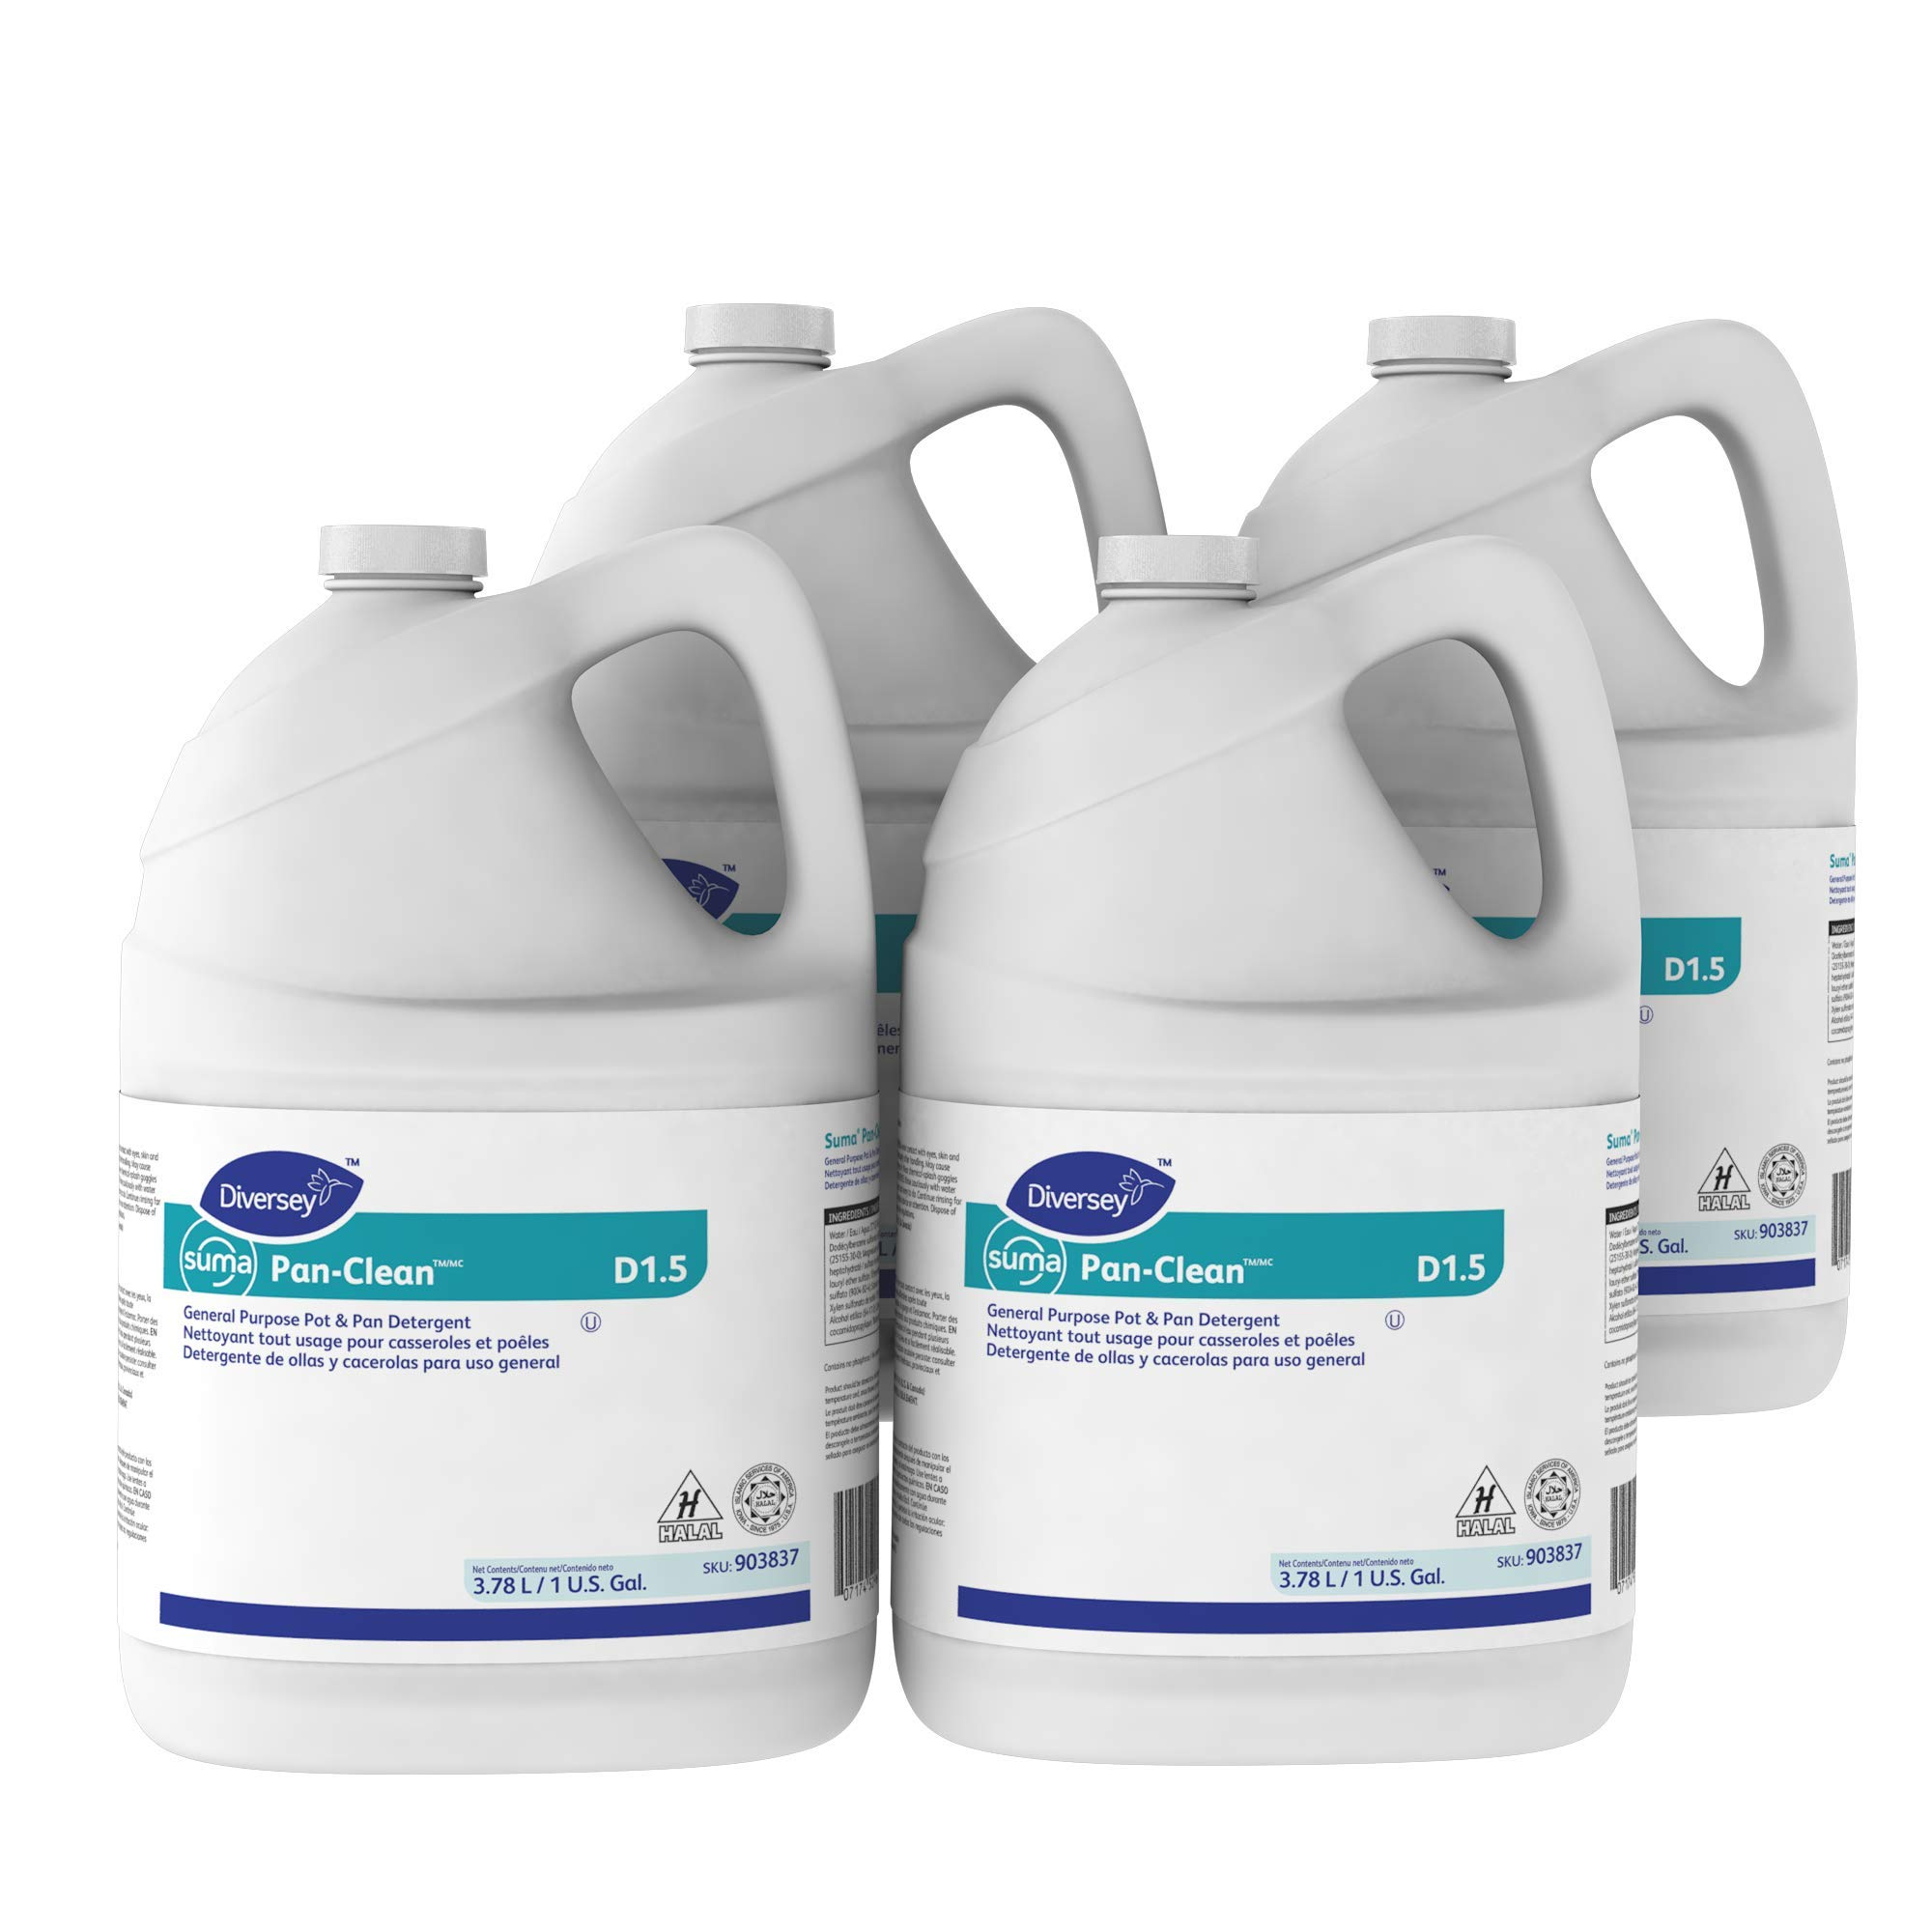 Diversey Suma 903837 Pan-Clean, General Purpose Pot and Pan Detergent, D1.5, 4 x 1 gal/3.78 L Containers (Pack of 4)